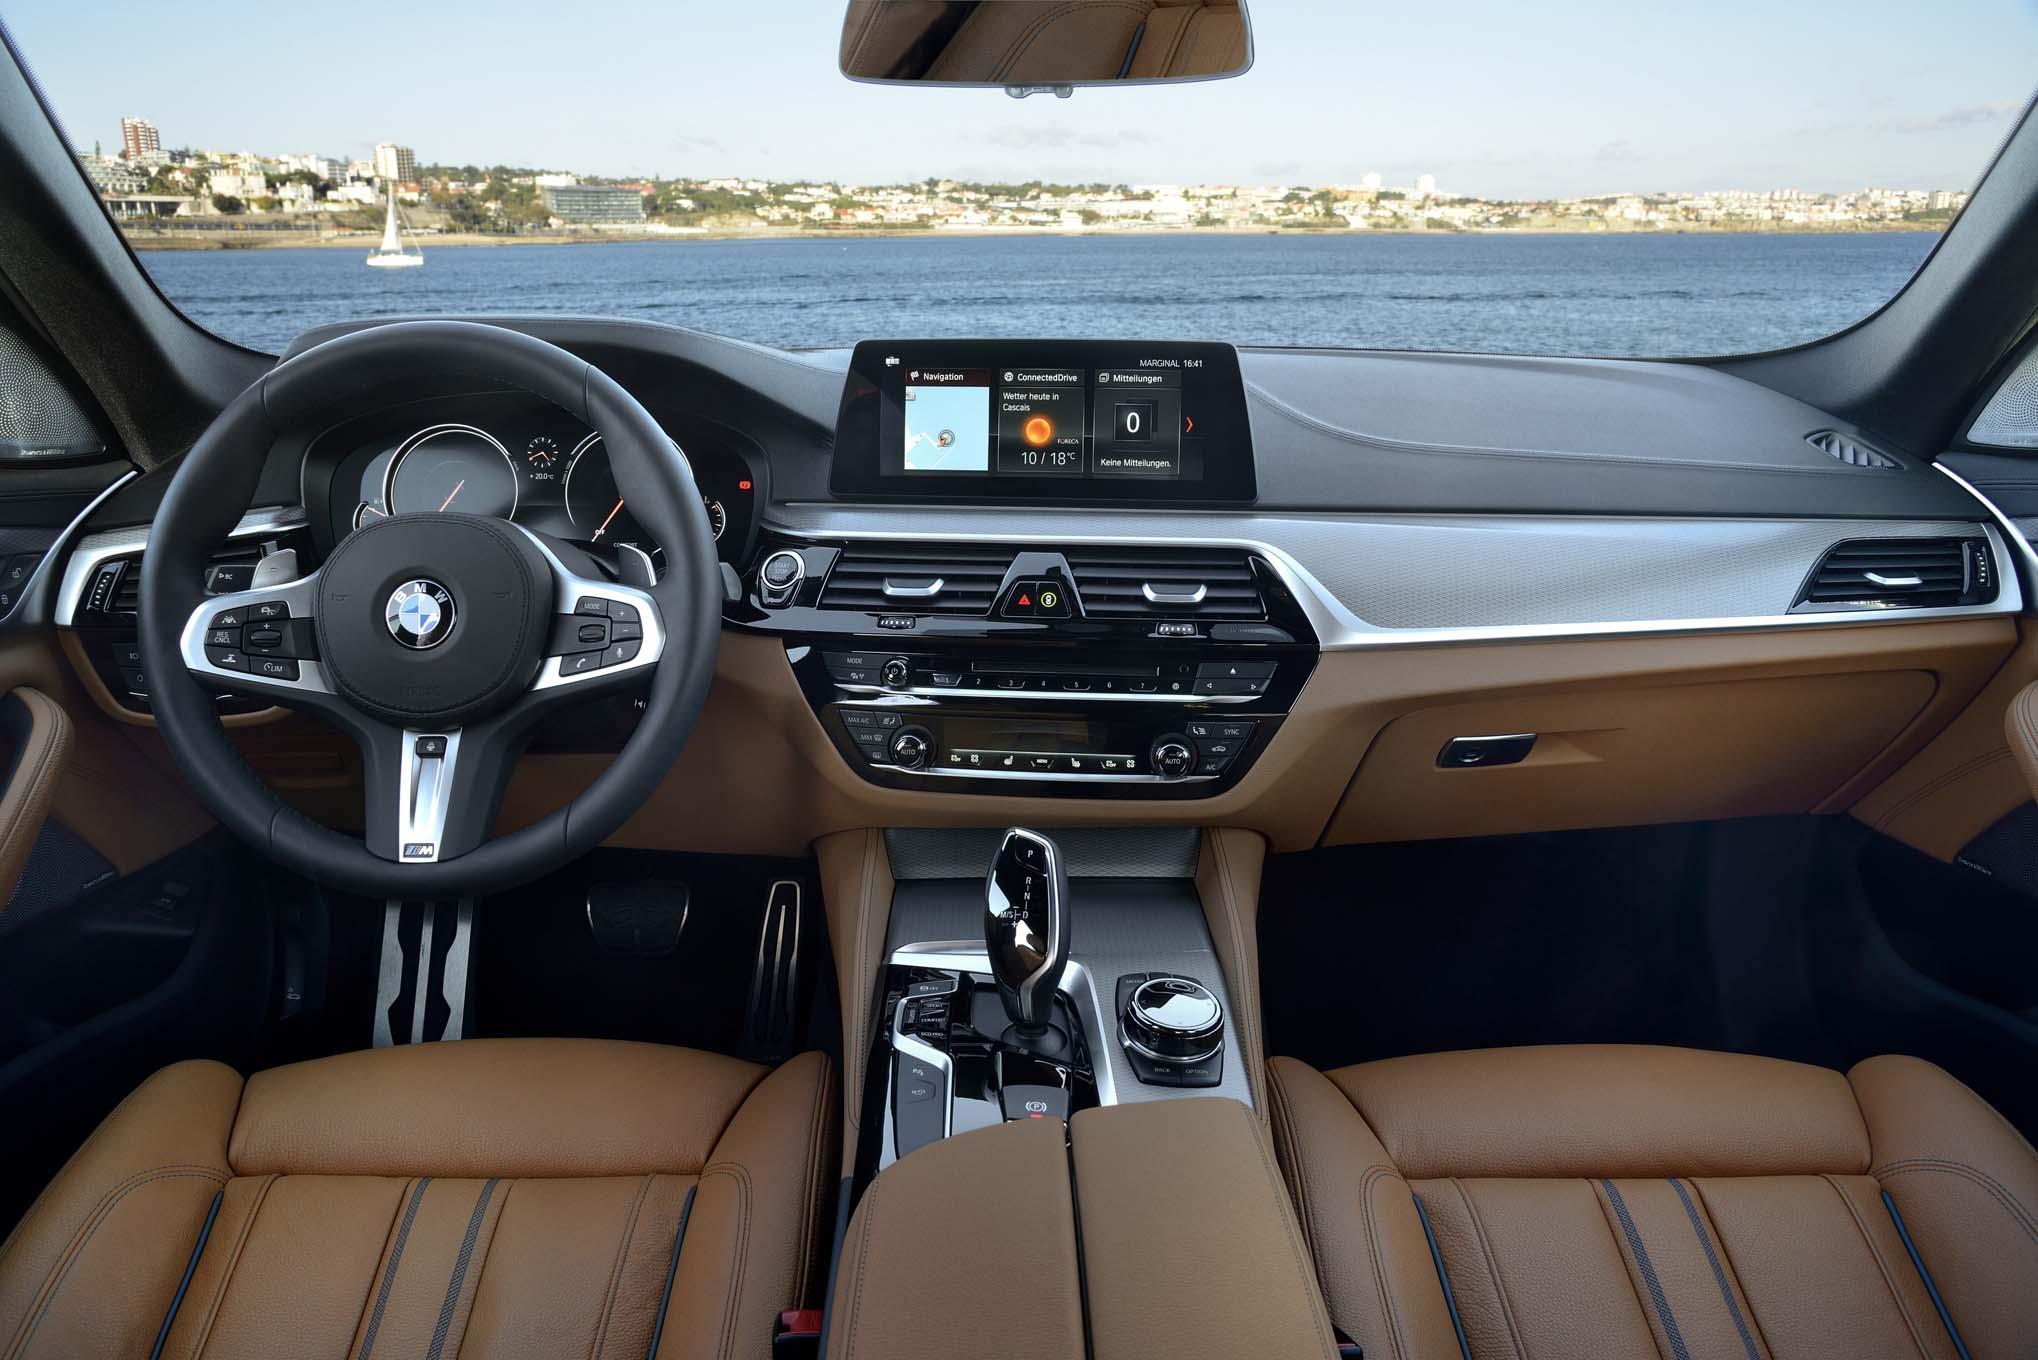 2017 BMW 540i M Sport Interior Dashboard (View 24 of 35)